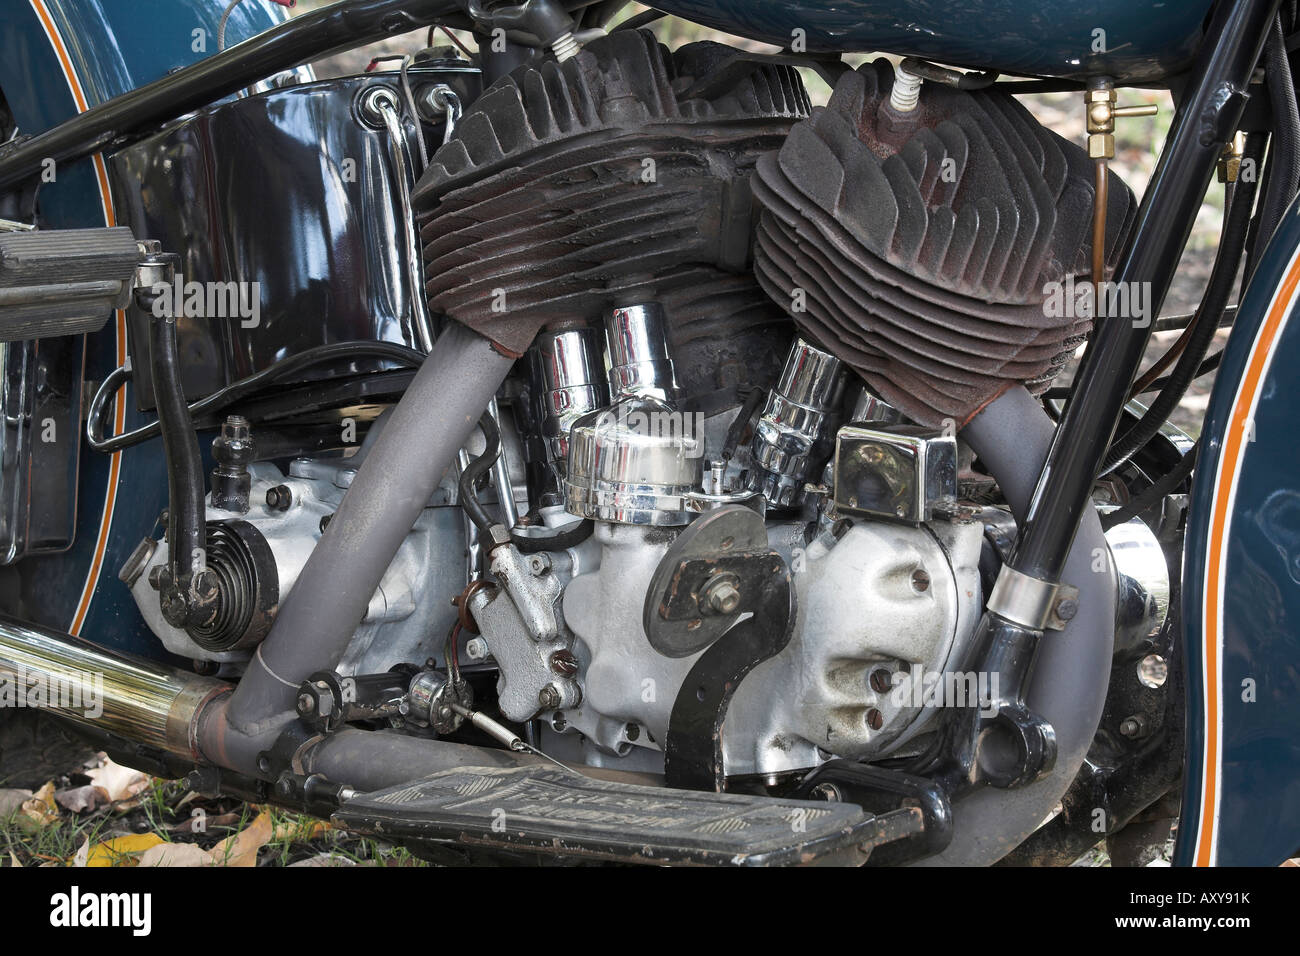 Classic Harley Davidson Flathead engine Stock Photo ...